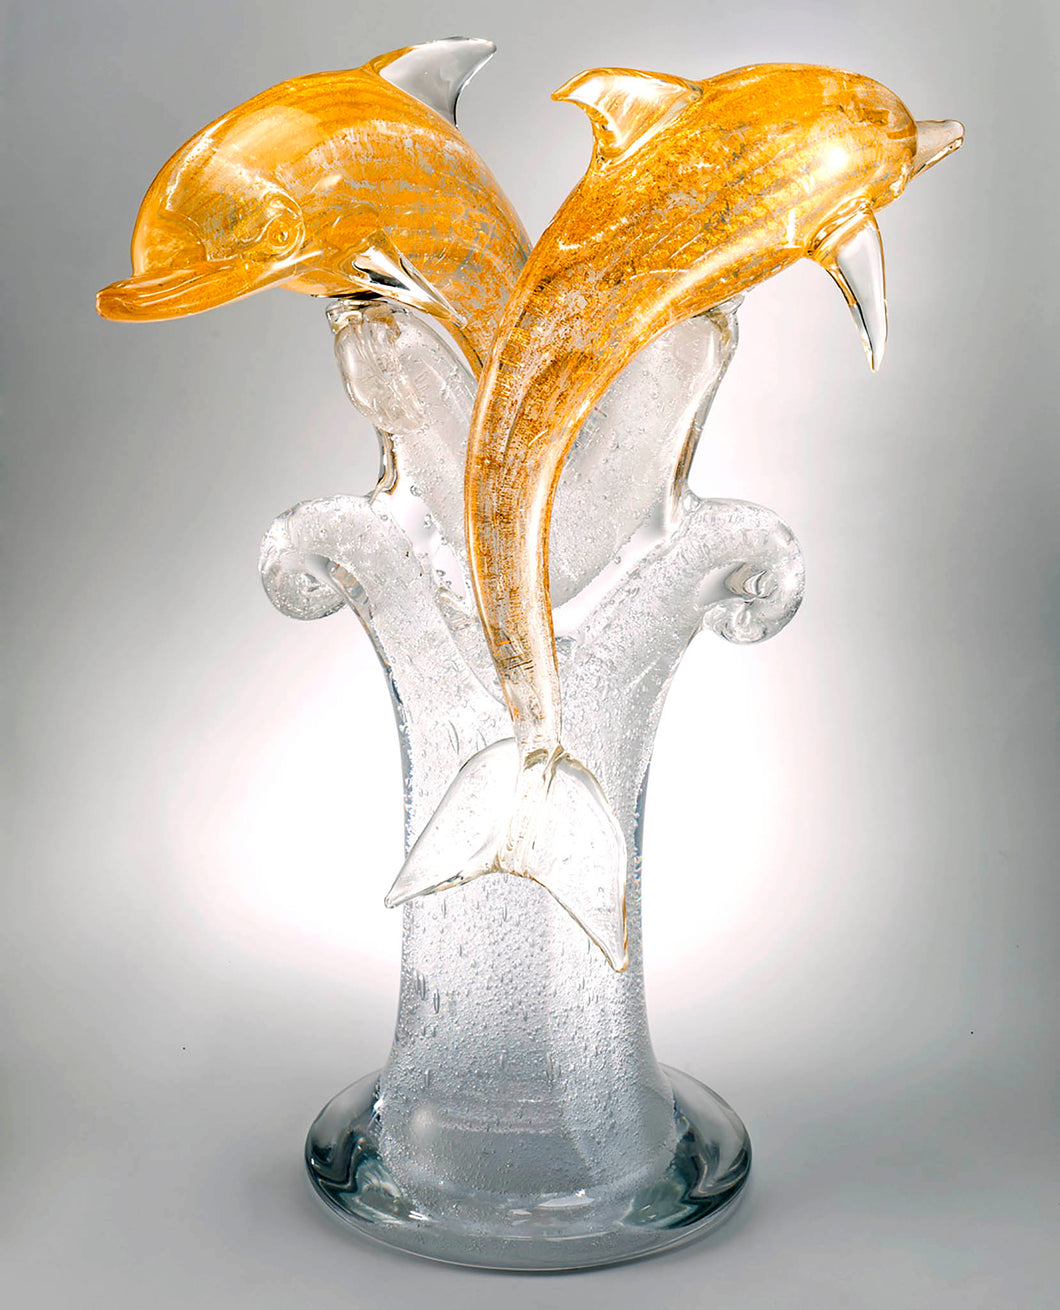 DOLPHINS Murano Glass Sculpture